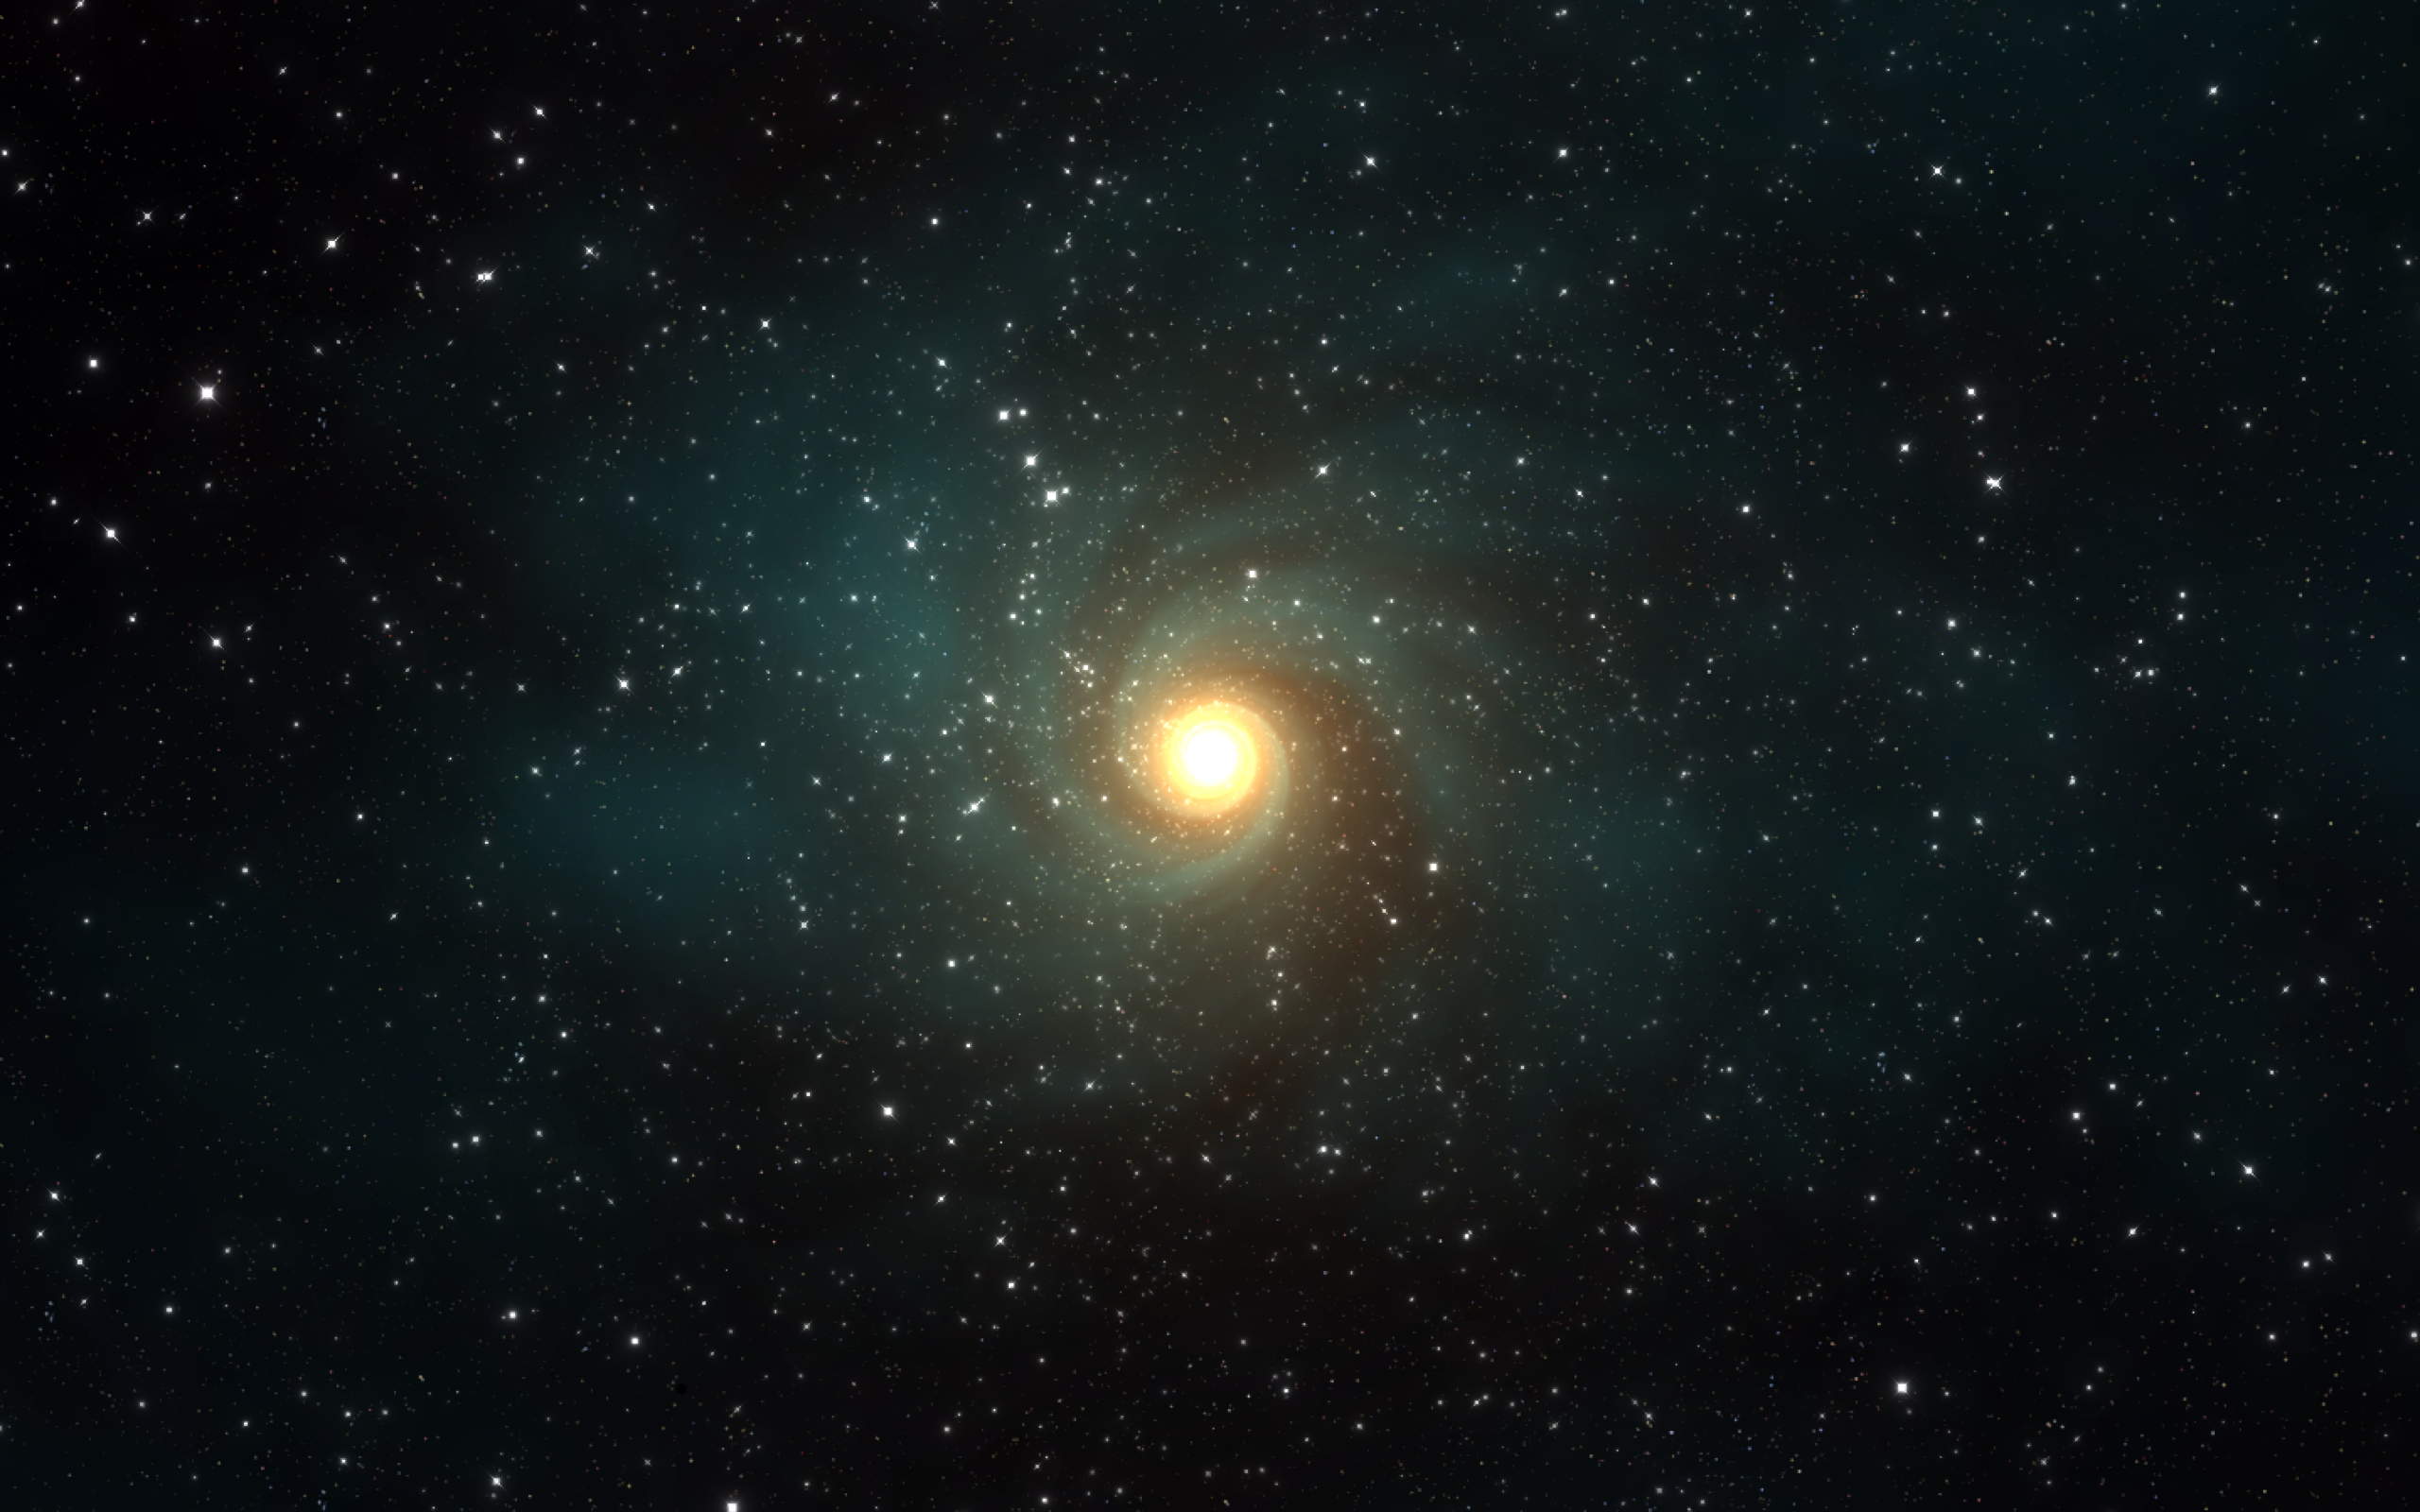 Space HD PNG - 120261